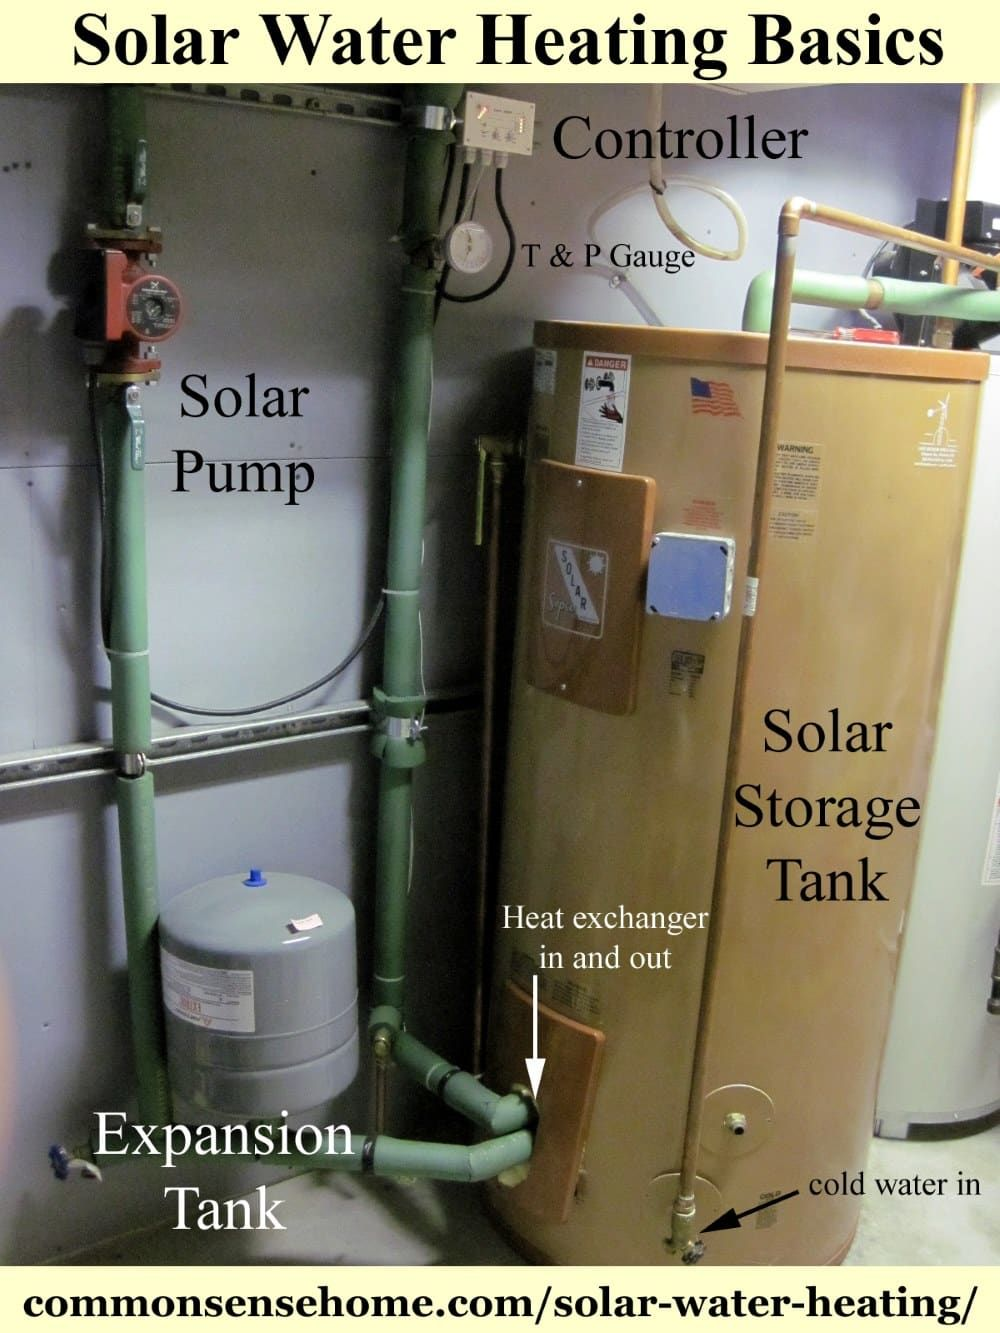 Solar Water Heating Basics - What You Need to Heat Water with the ...